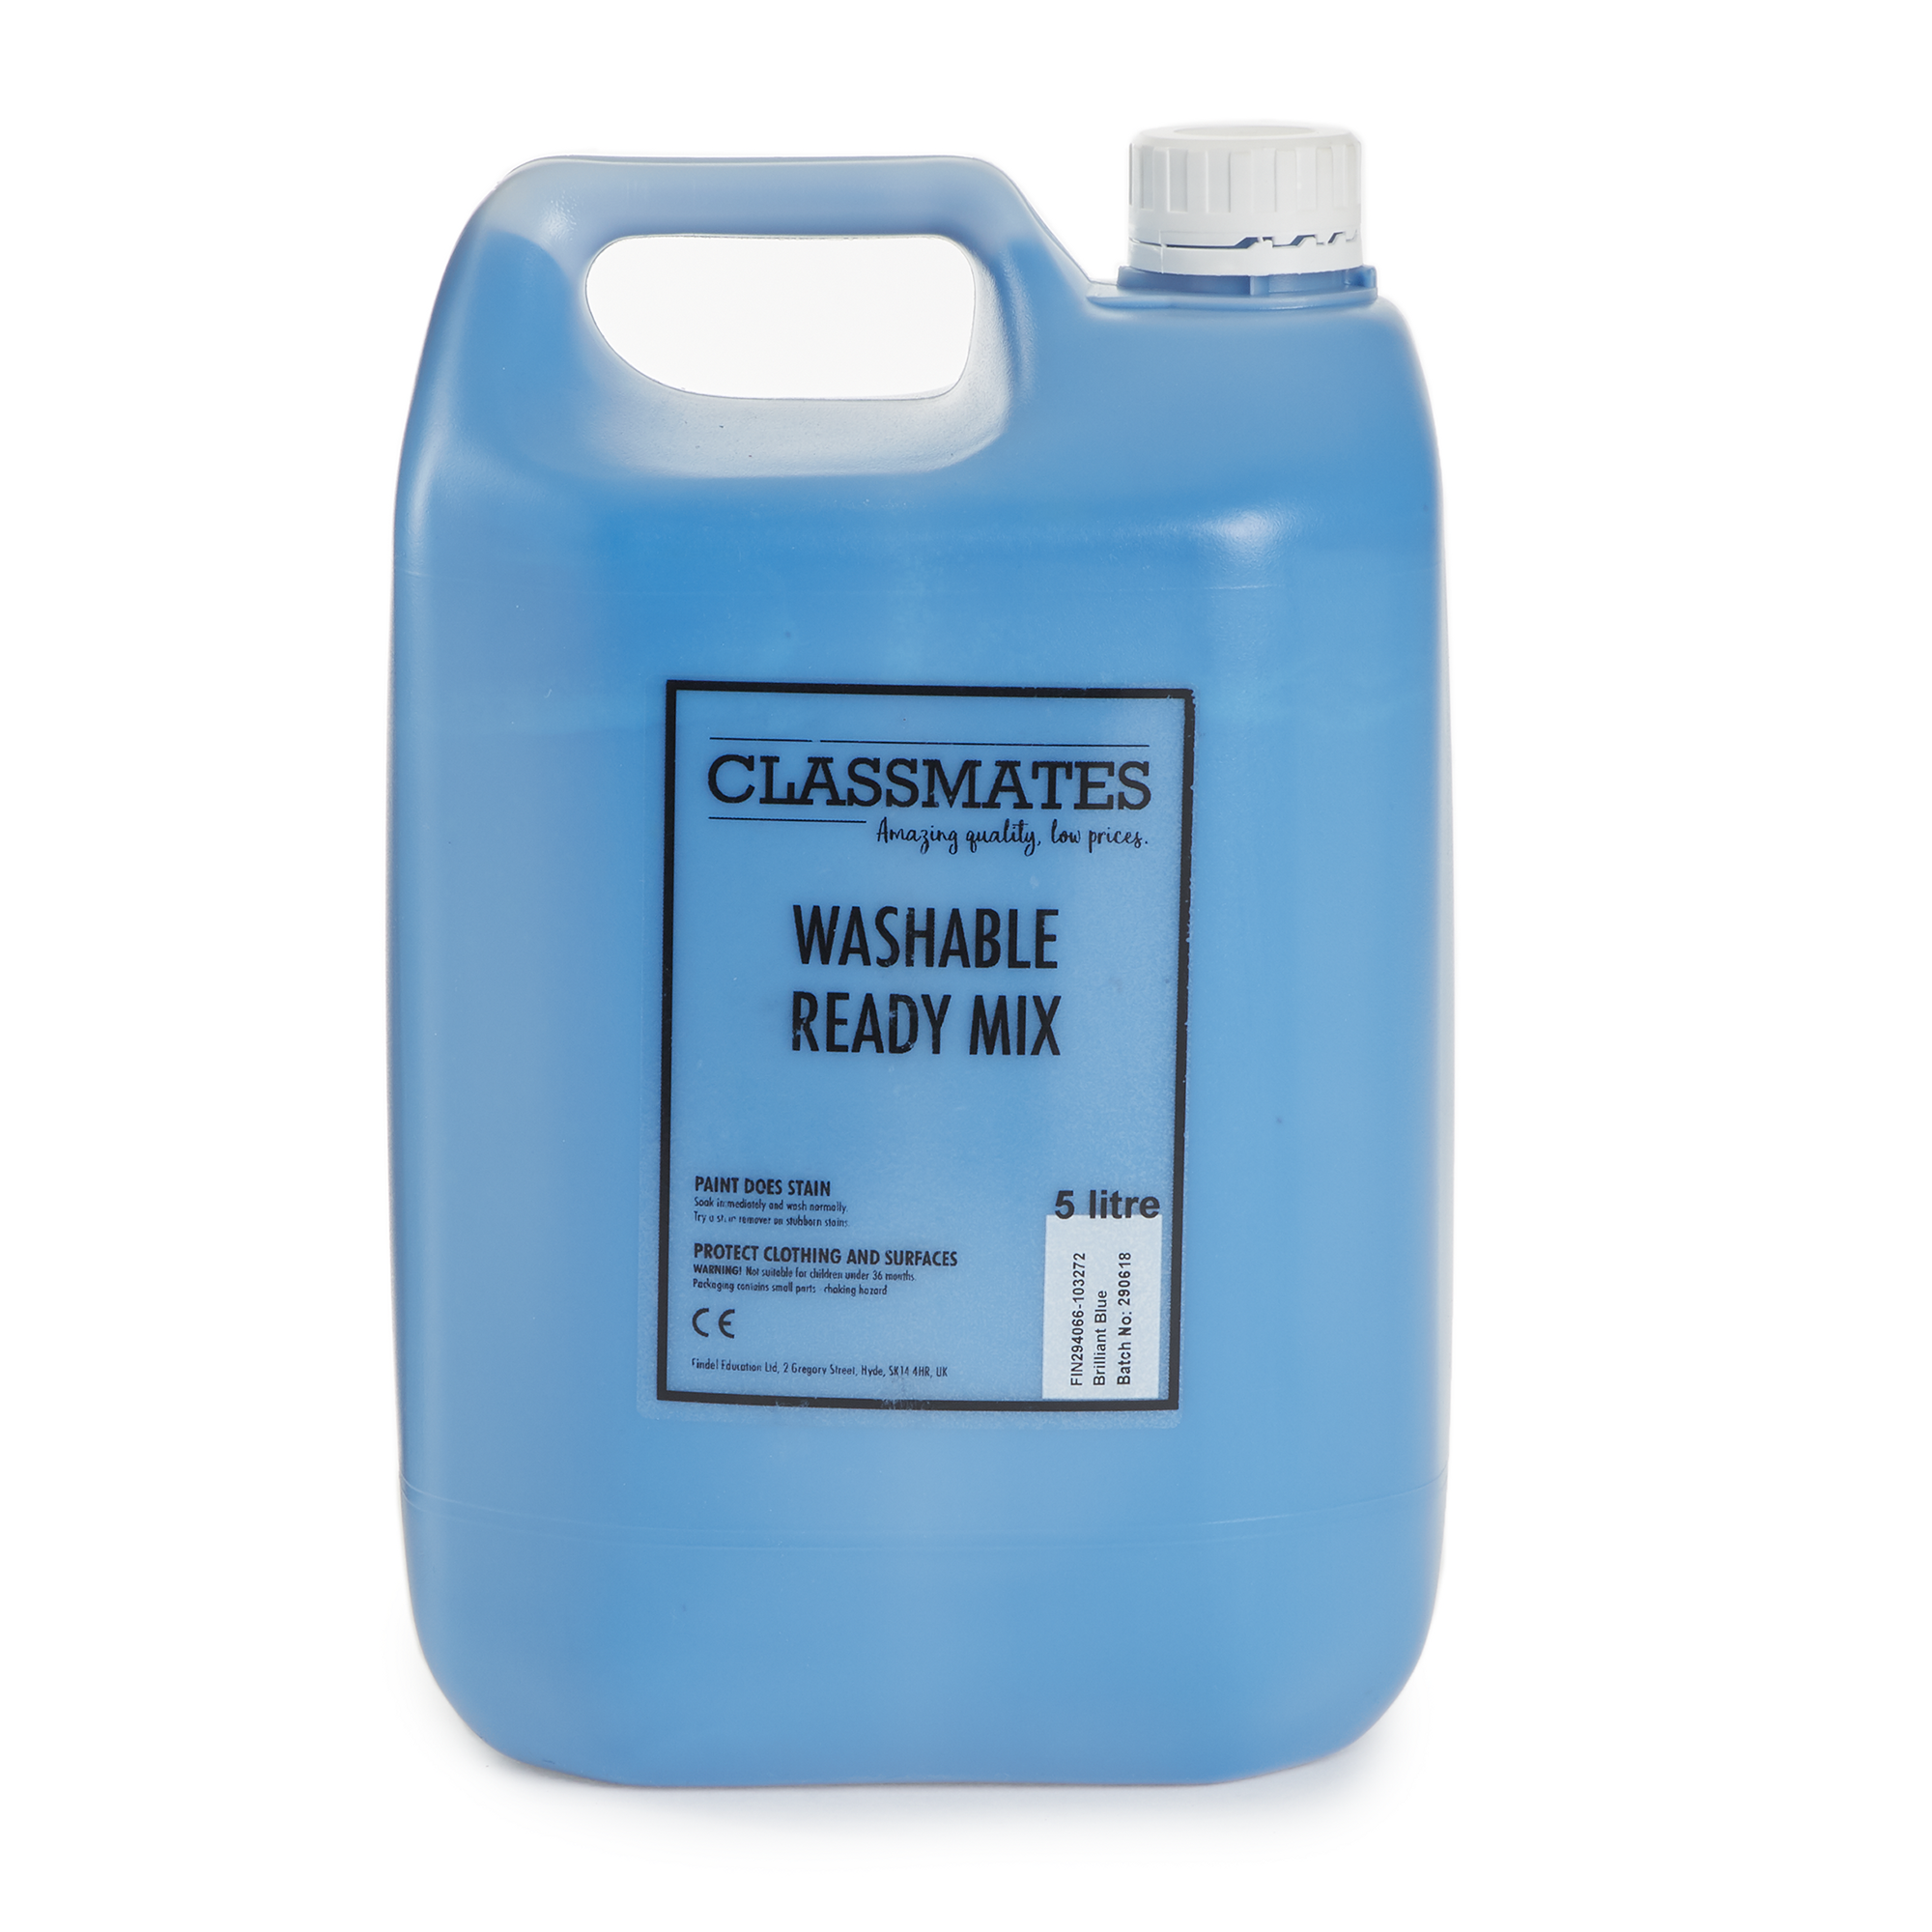 Hc1765309 Classmates Washable Ready Mixed Paint In Blue 5 Litre Bottle Findel International